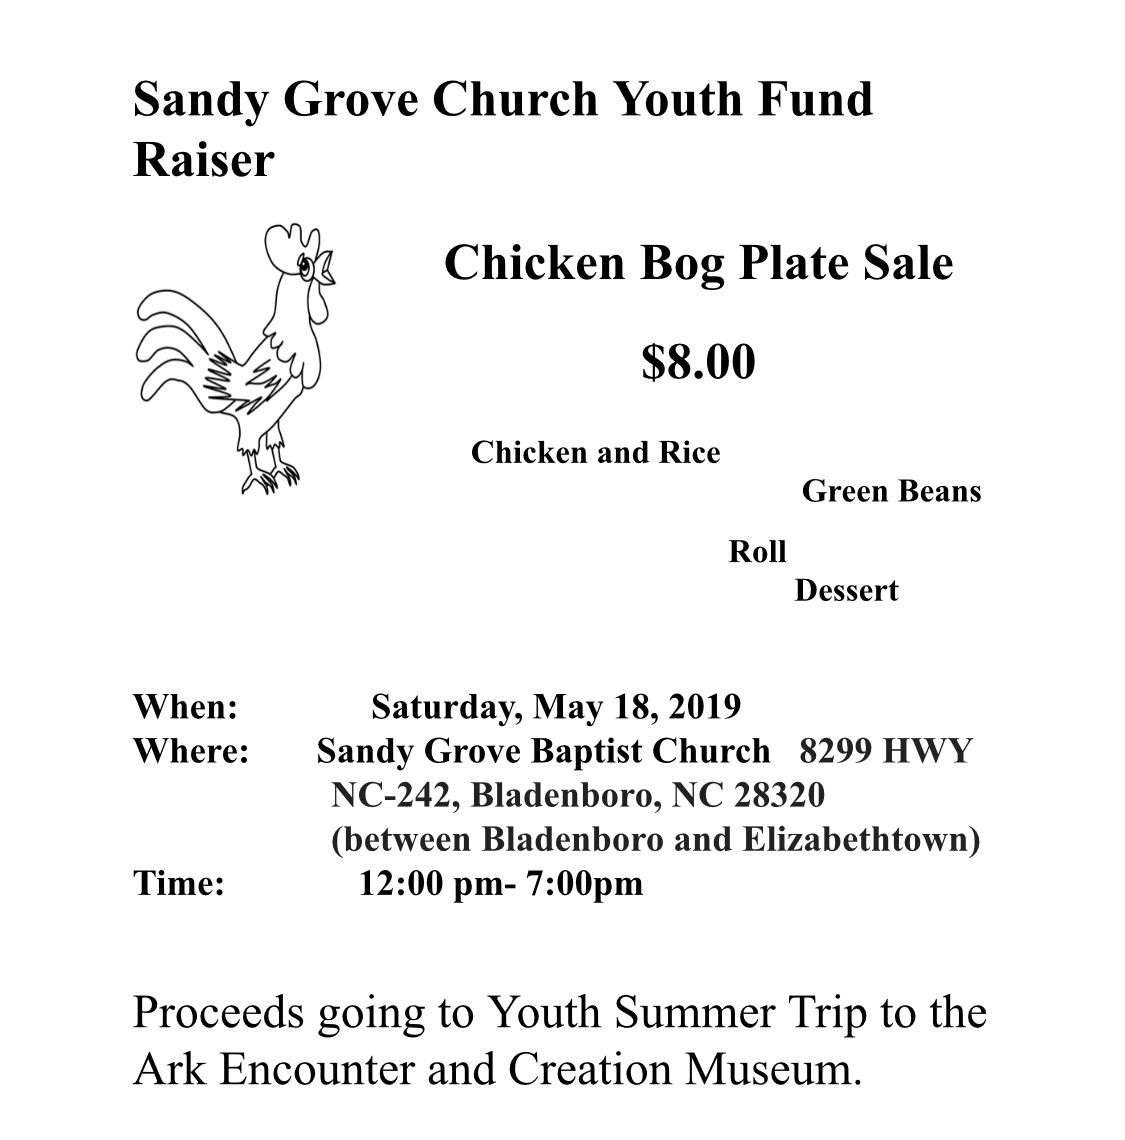 Sandy Grove Church Youth Fund Raiser